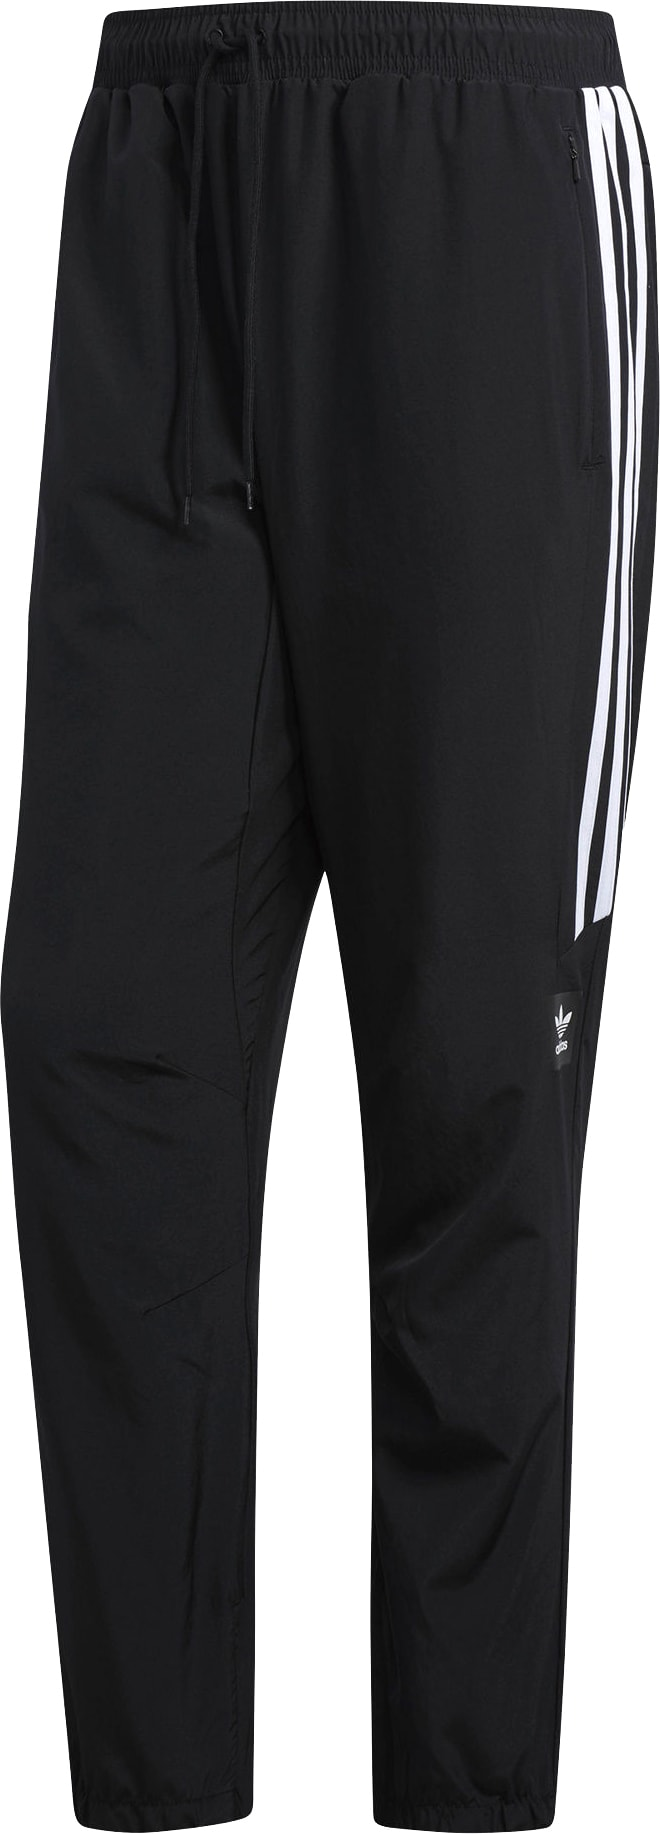 Image of Adidas Classic Wind Pants